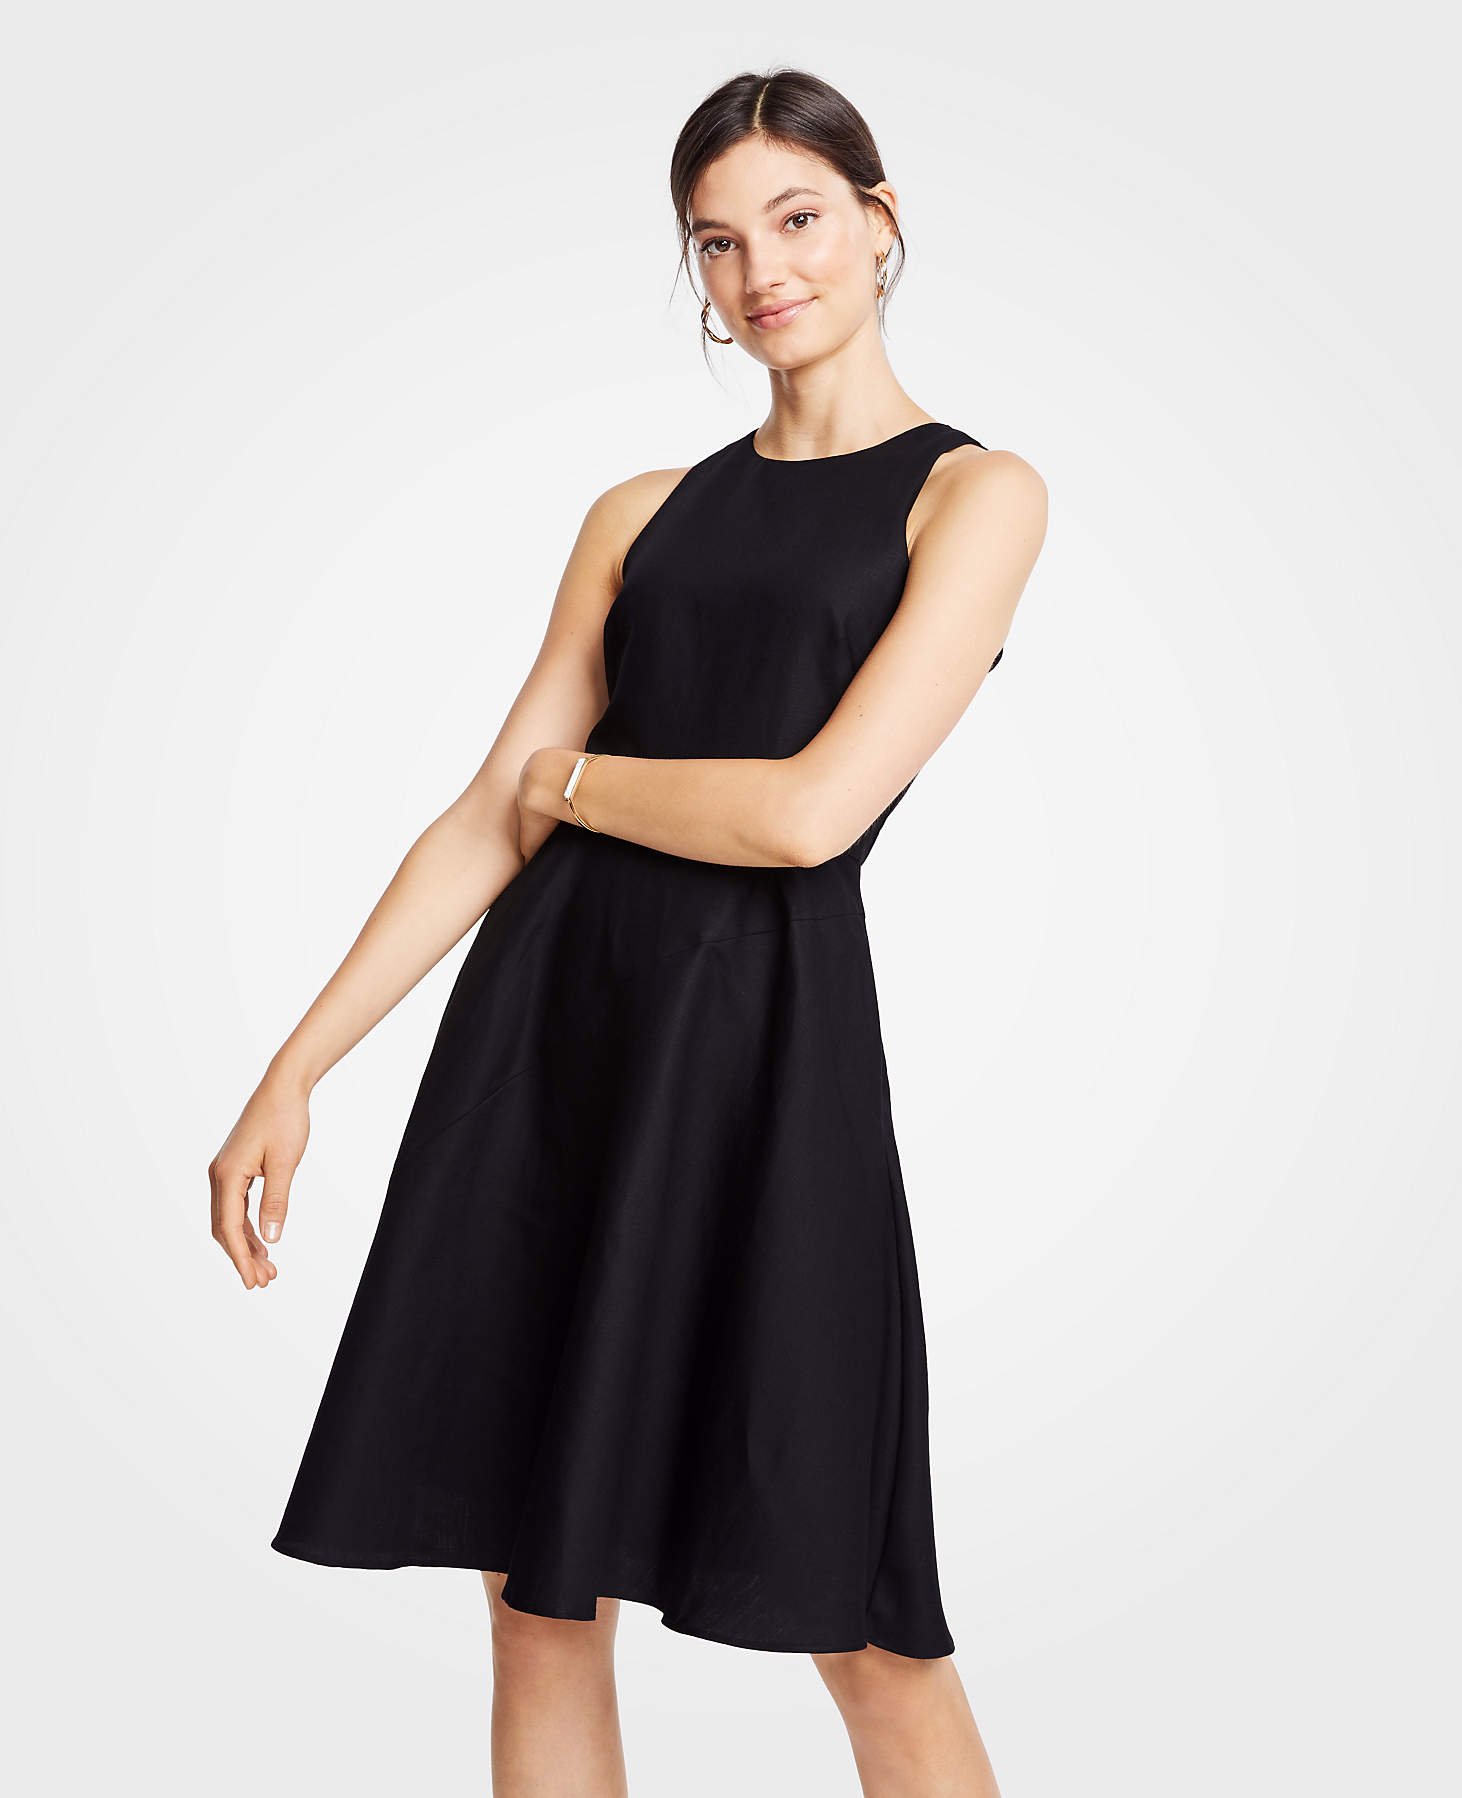 Black Cotton Linen Sleeveless Flare Dress